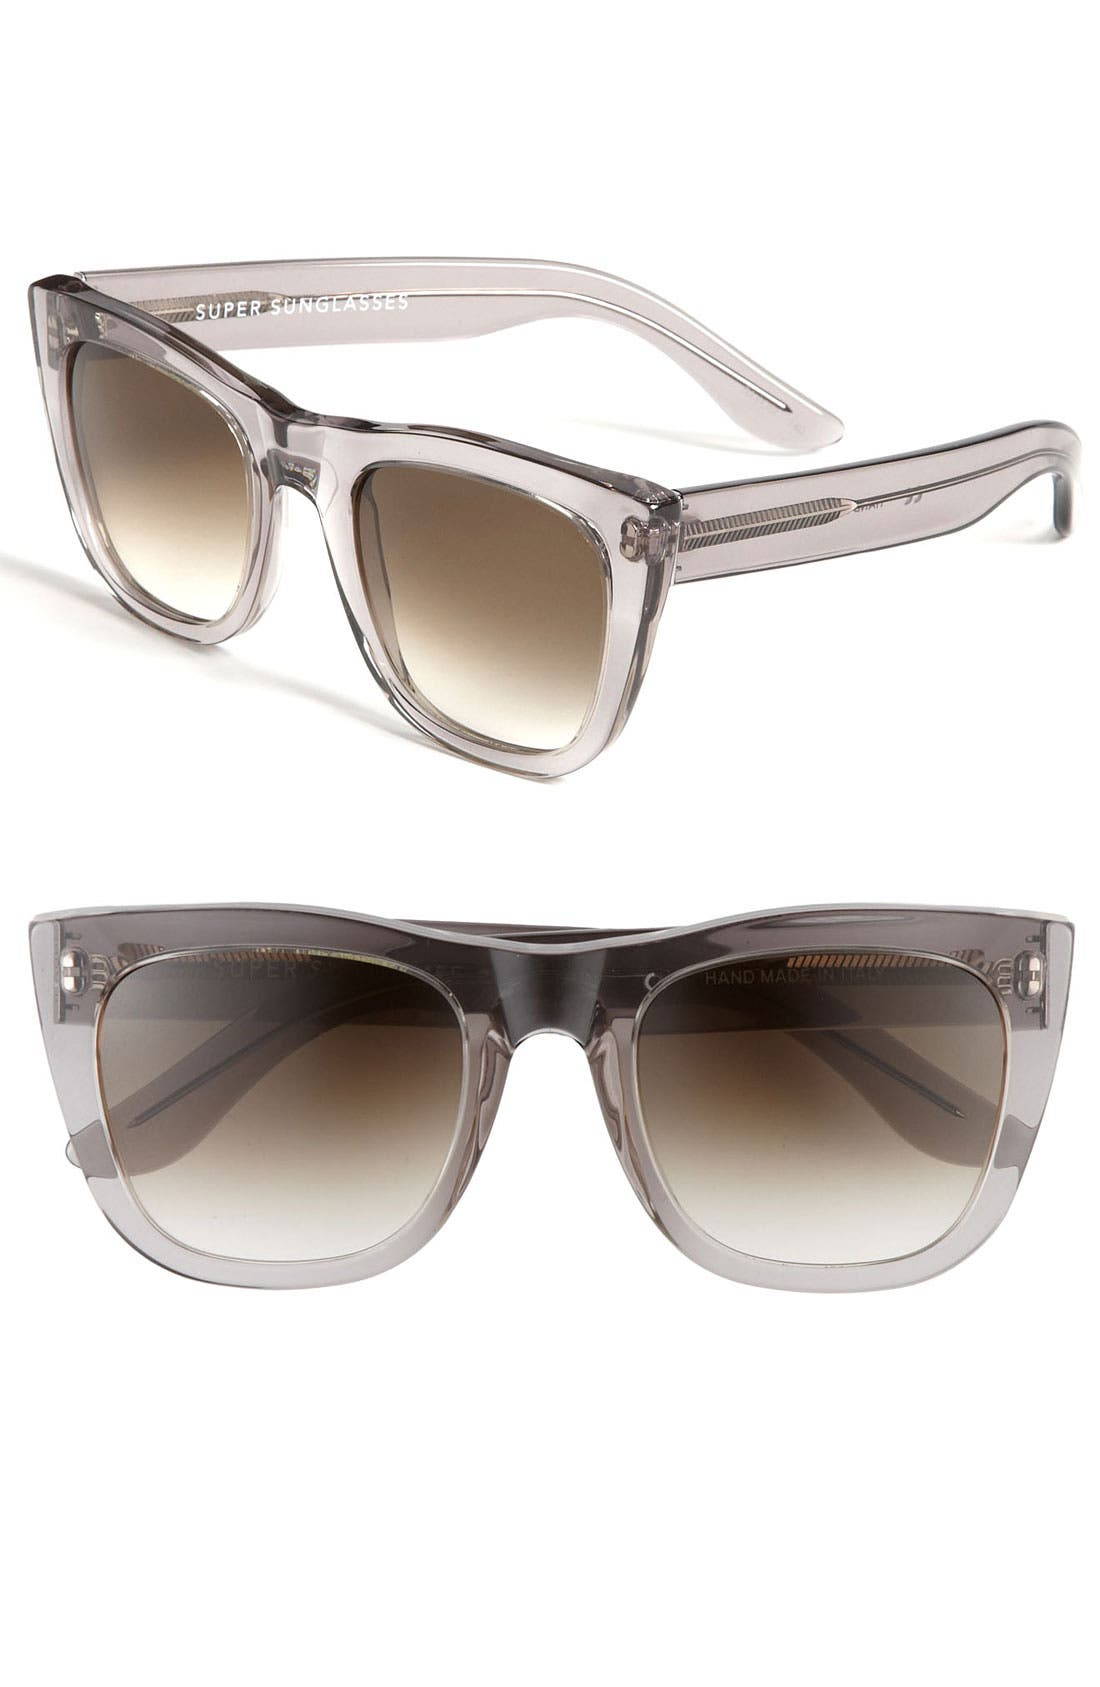 Main Image - SUPER by RETROSUPERFUTURE® 52mm Oversized Sunglasses